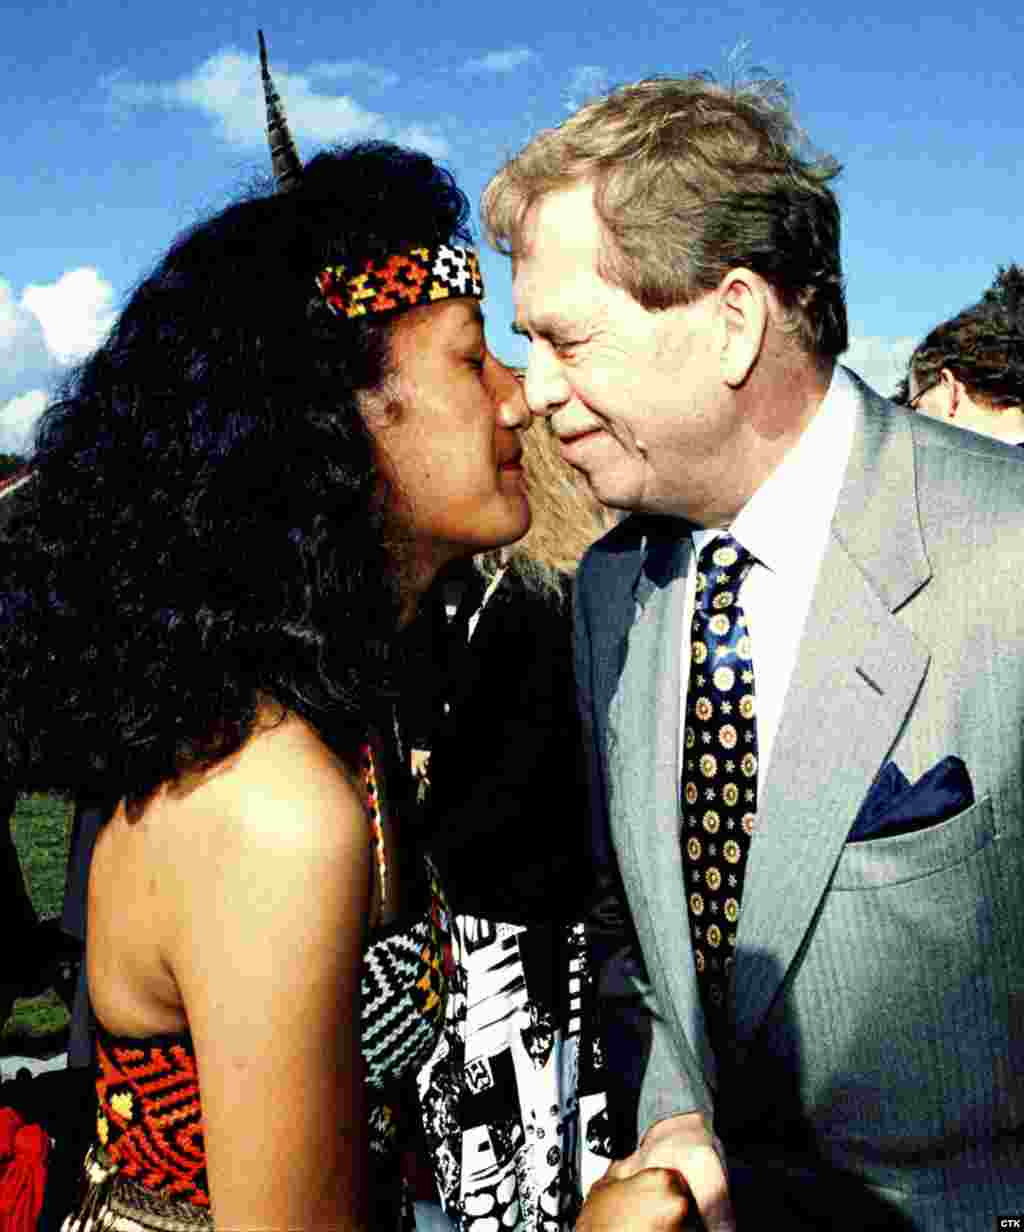 Havel greets a Maori girl in the traditional tribal way during a visit to New Zealand in 1995. (Stanislav Peska)